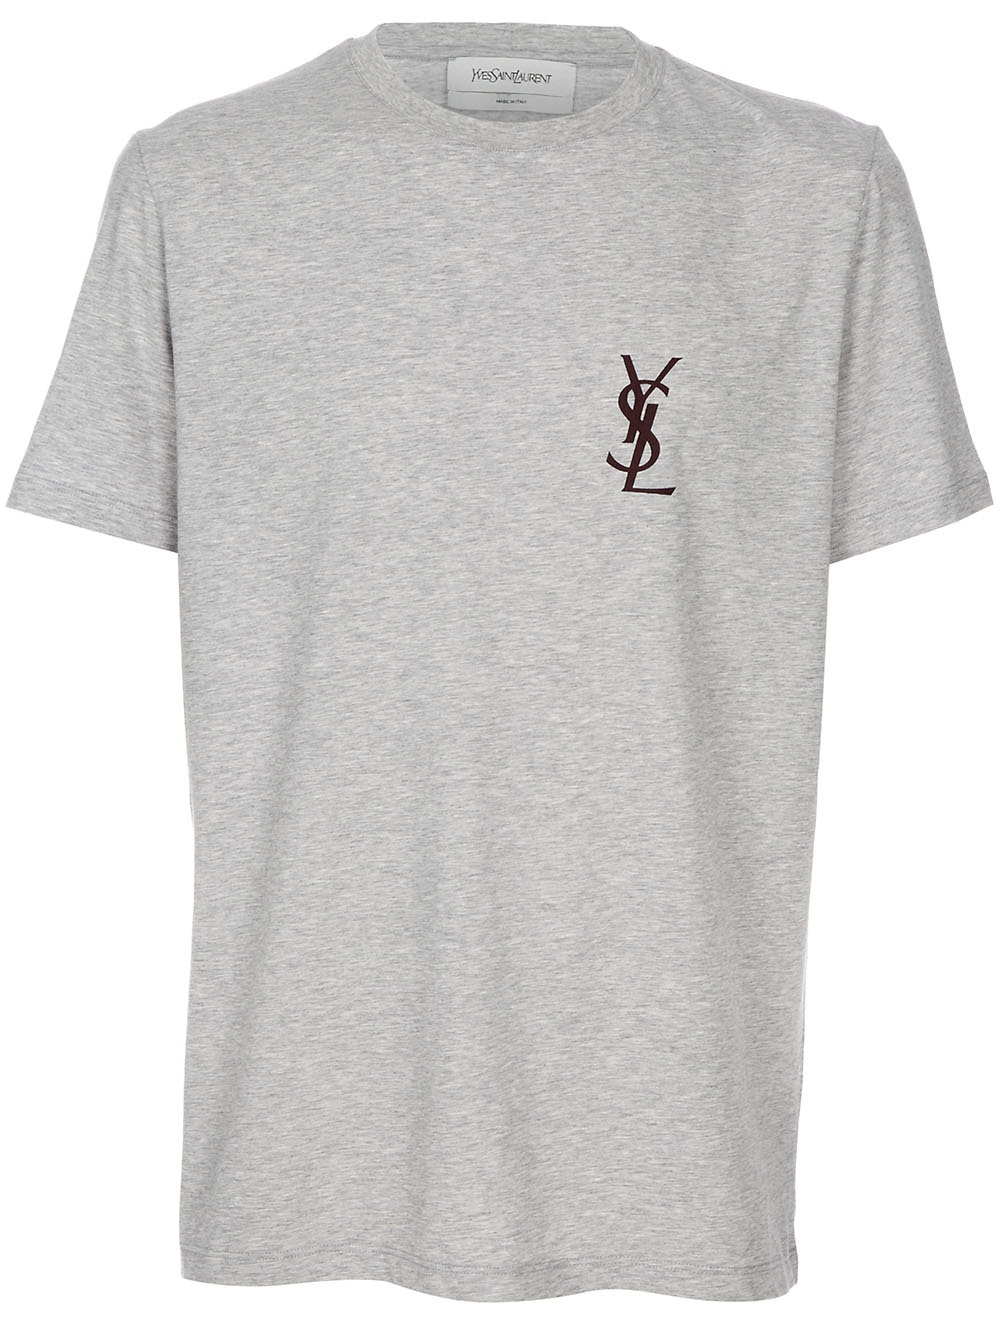 saint laurent logo t shirt in gray for men grey lyst. Black Bedroom Furniture Sets. Home Design Ideas